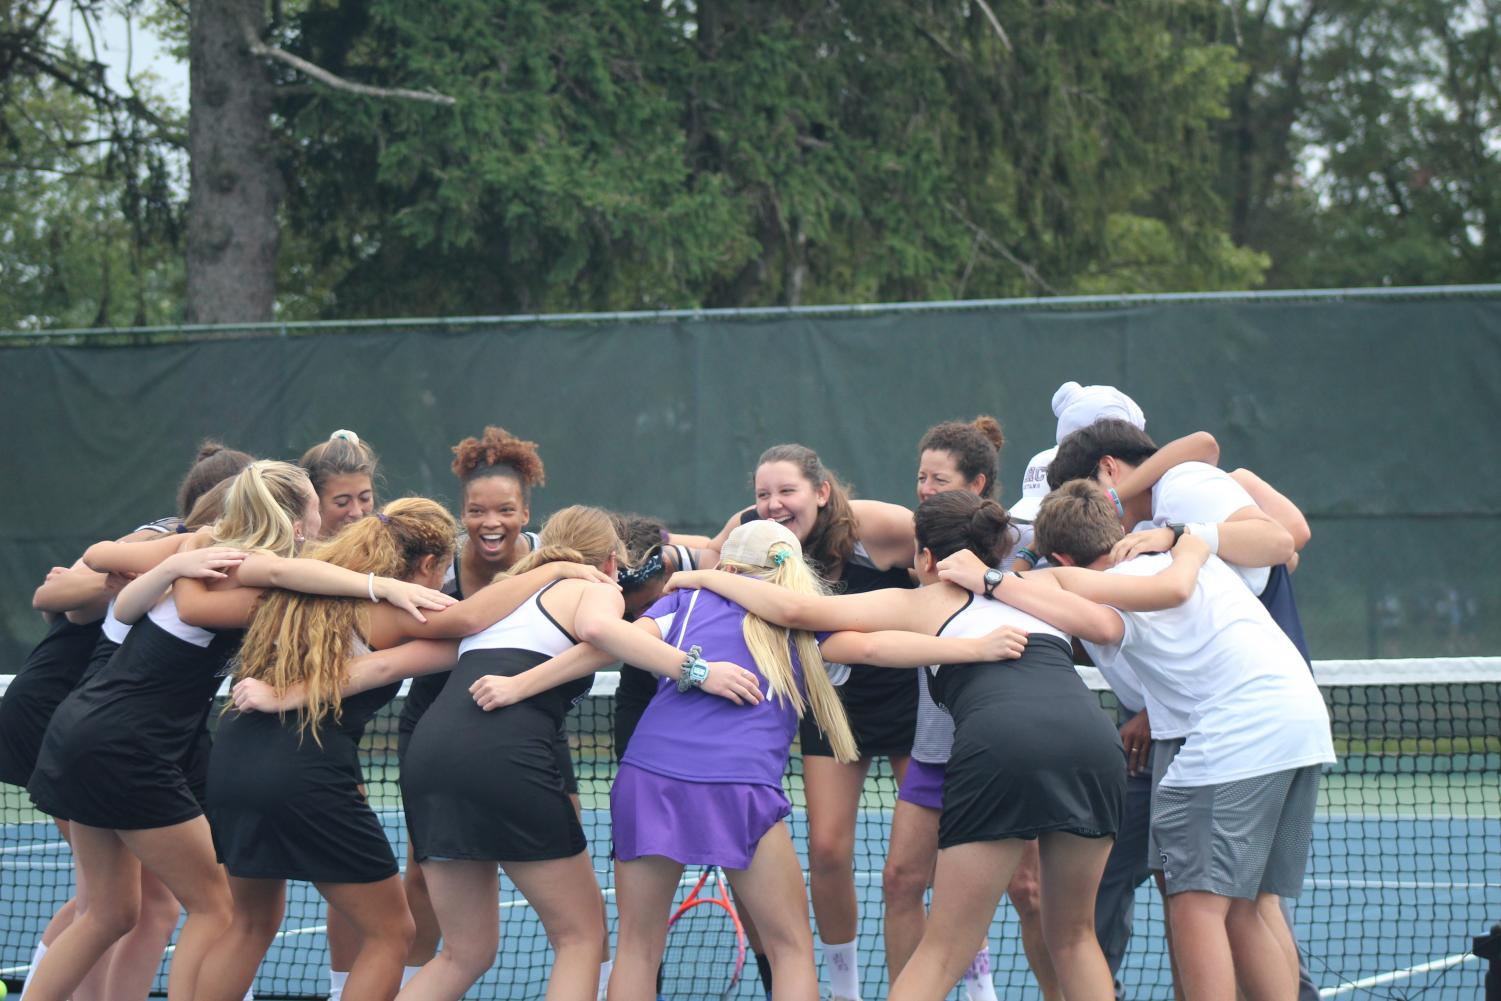 Varsity tennis team getting pumped up with a cheer before their match.